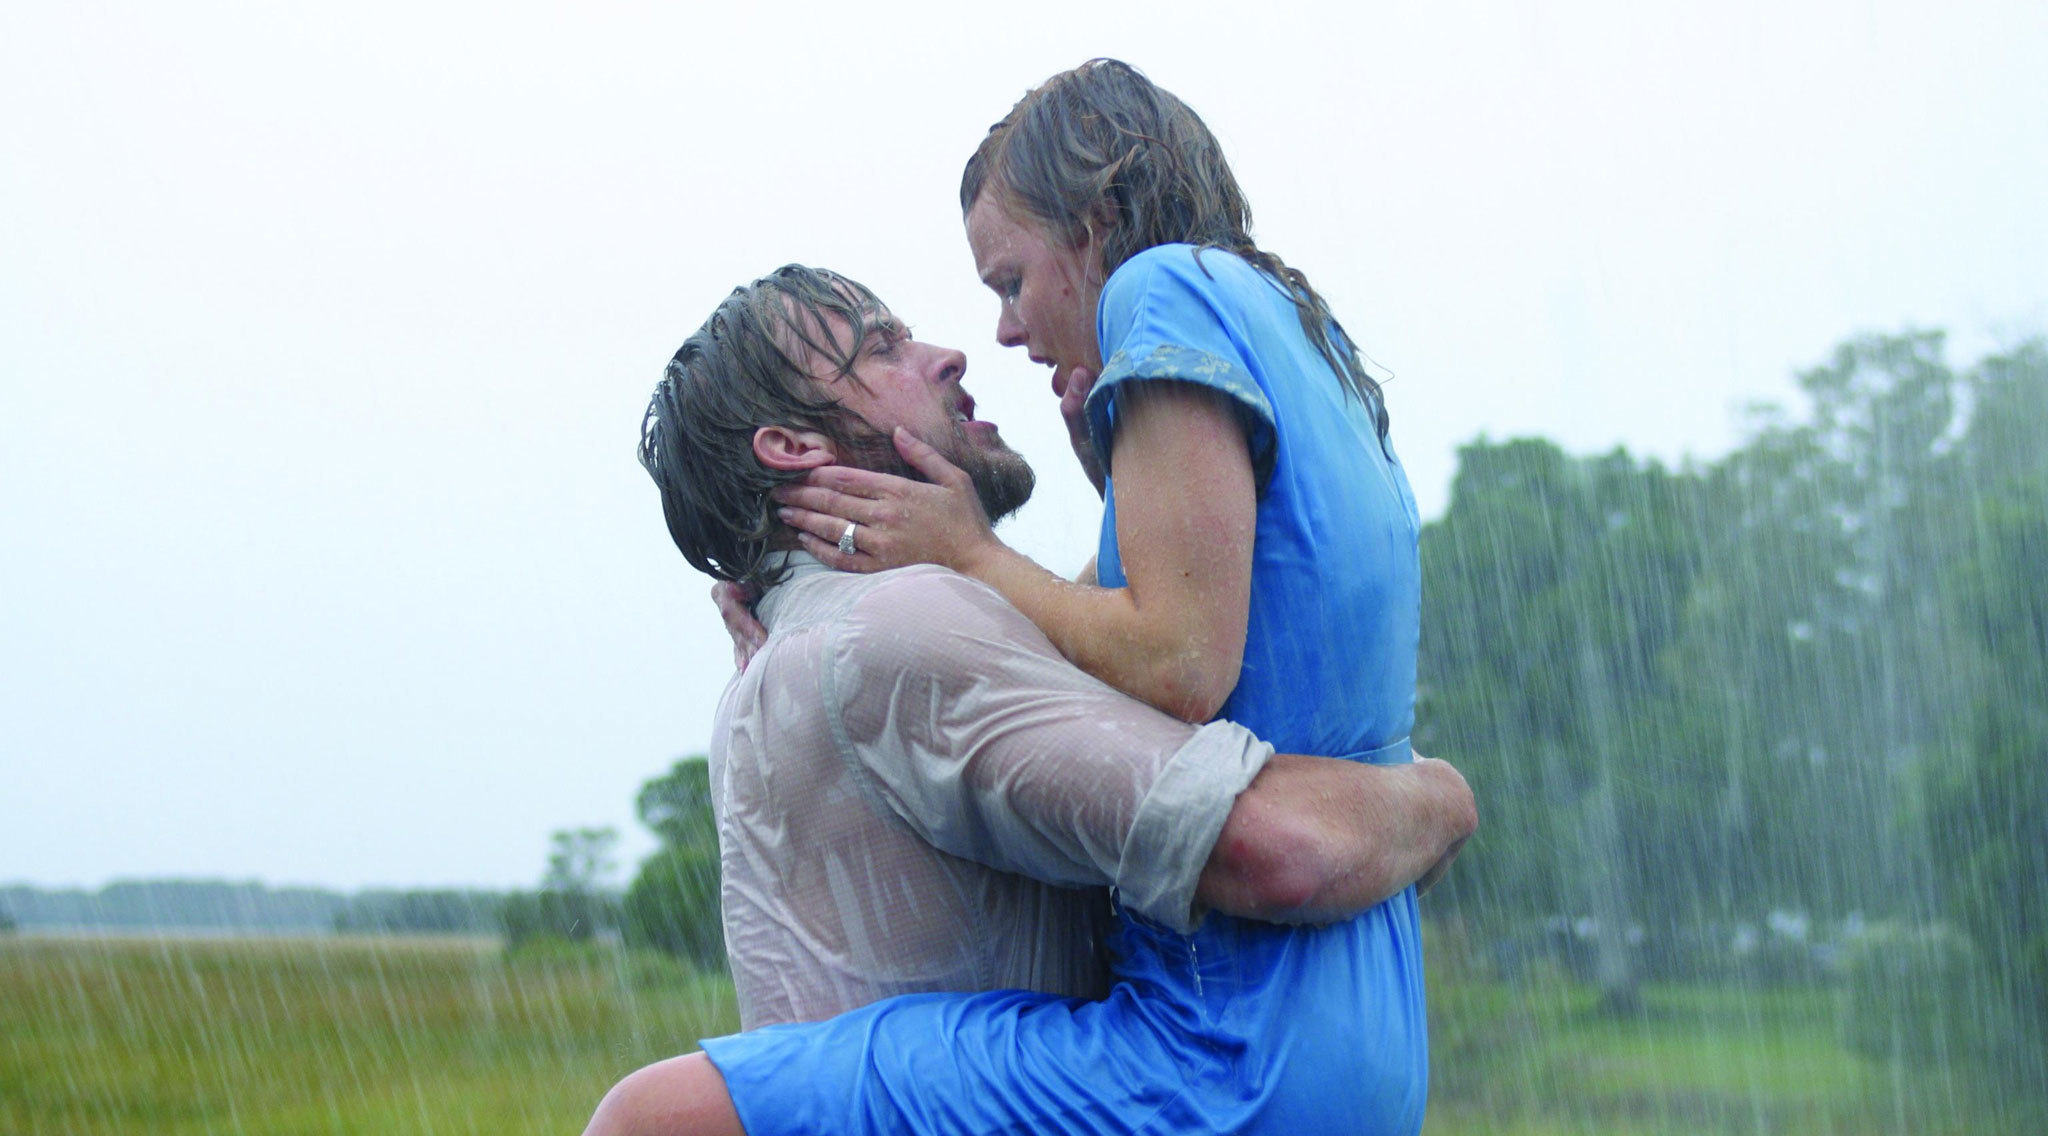 The best and worst romantic movies, according to relationship experts